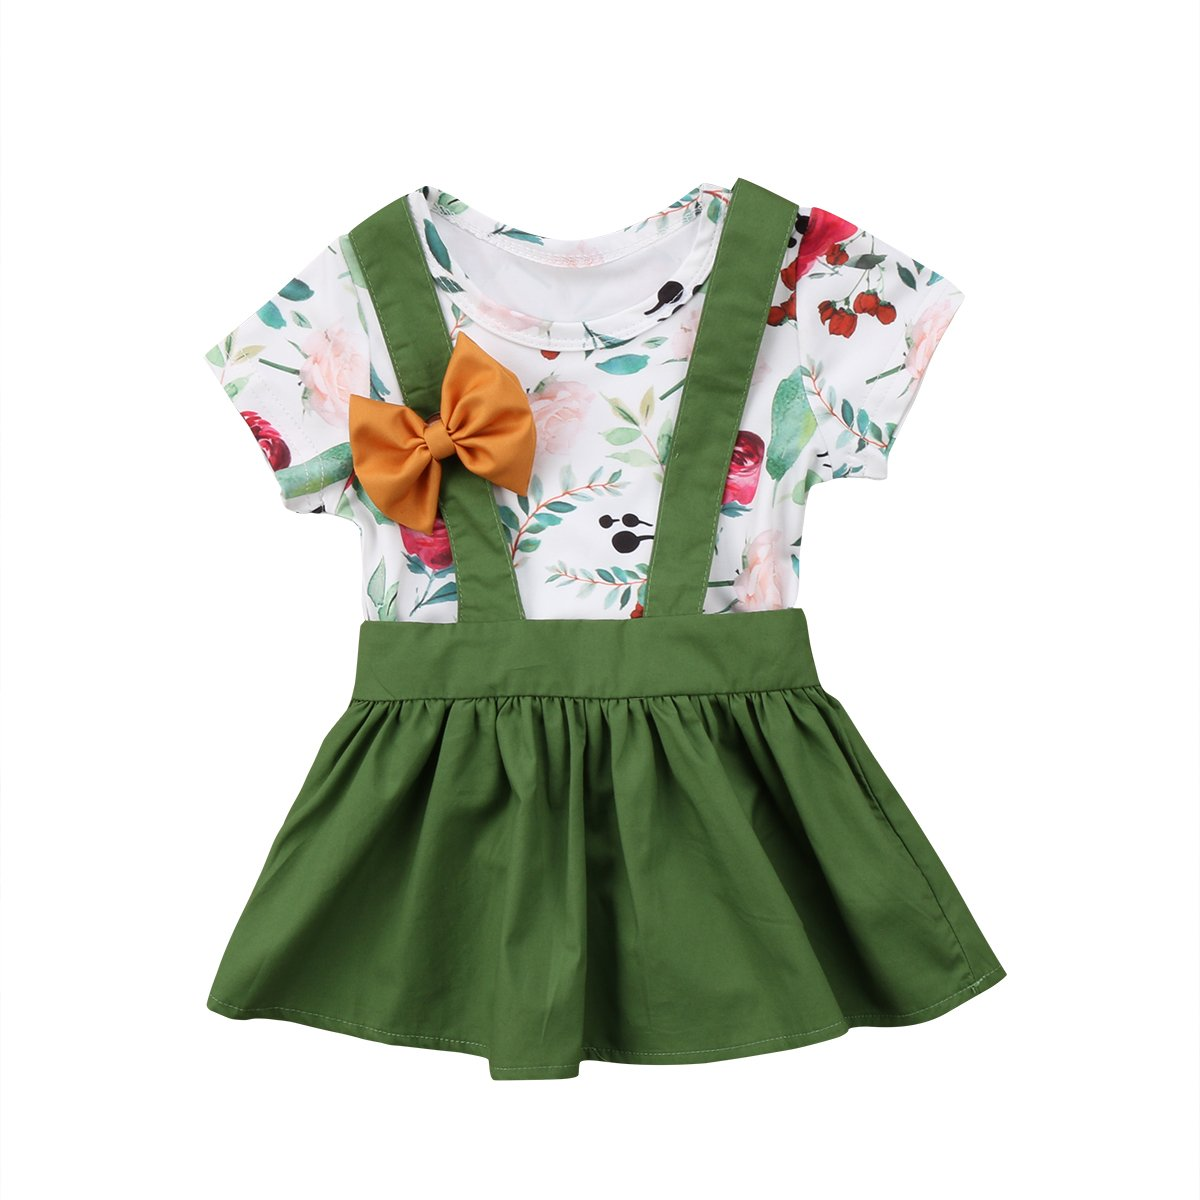 776e08d93 Best gift for your cute baby girl , granddaughter,Nephew...Specially design  for big sister and little sister. Fit for newborn baby girls from 6months  to 4 ...